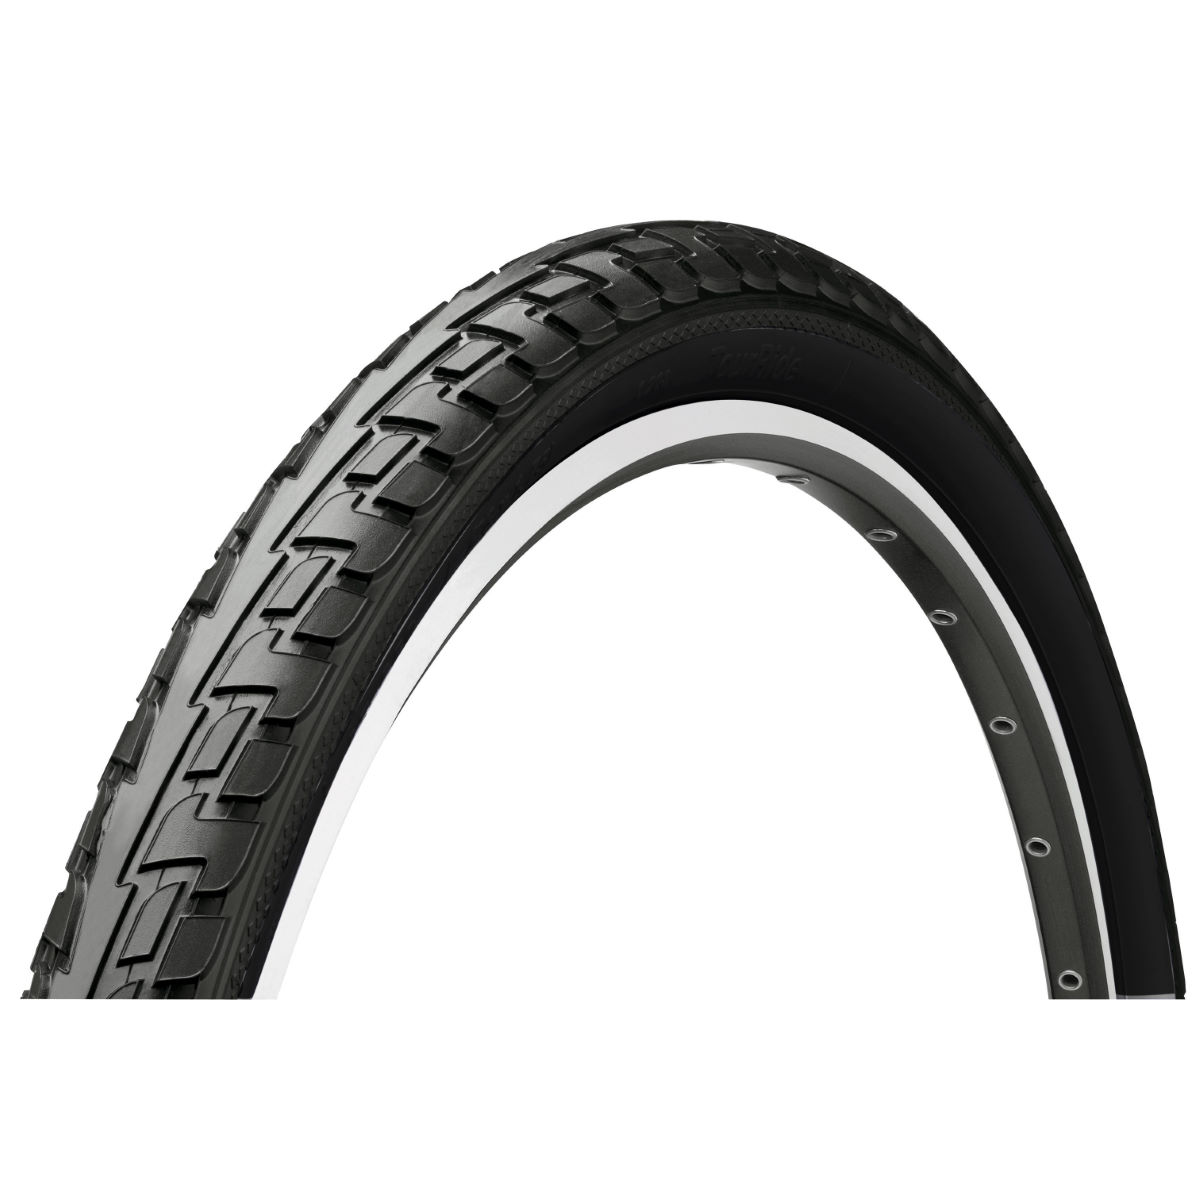 Continental TourRide City Road Tyre   Tyres